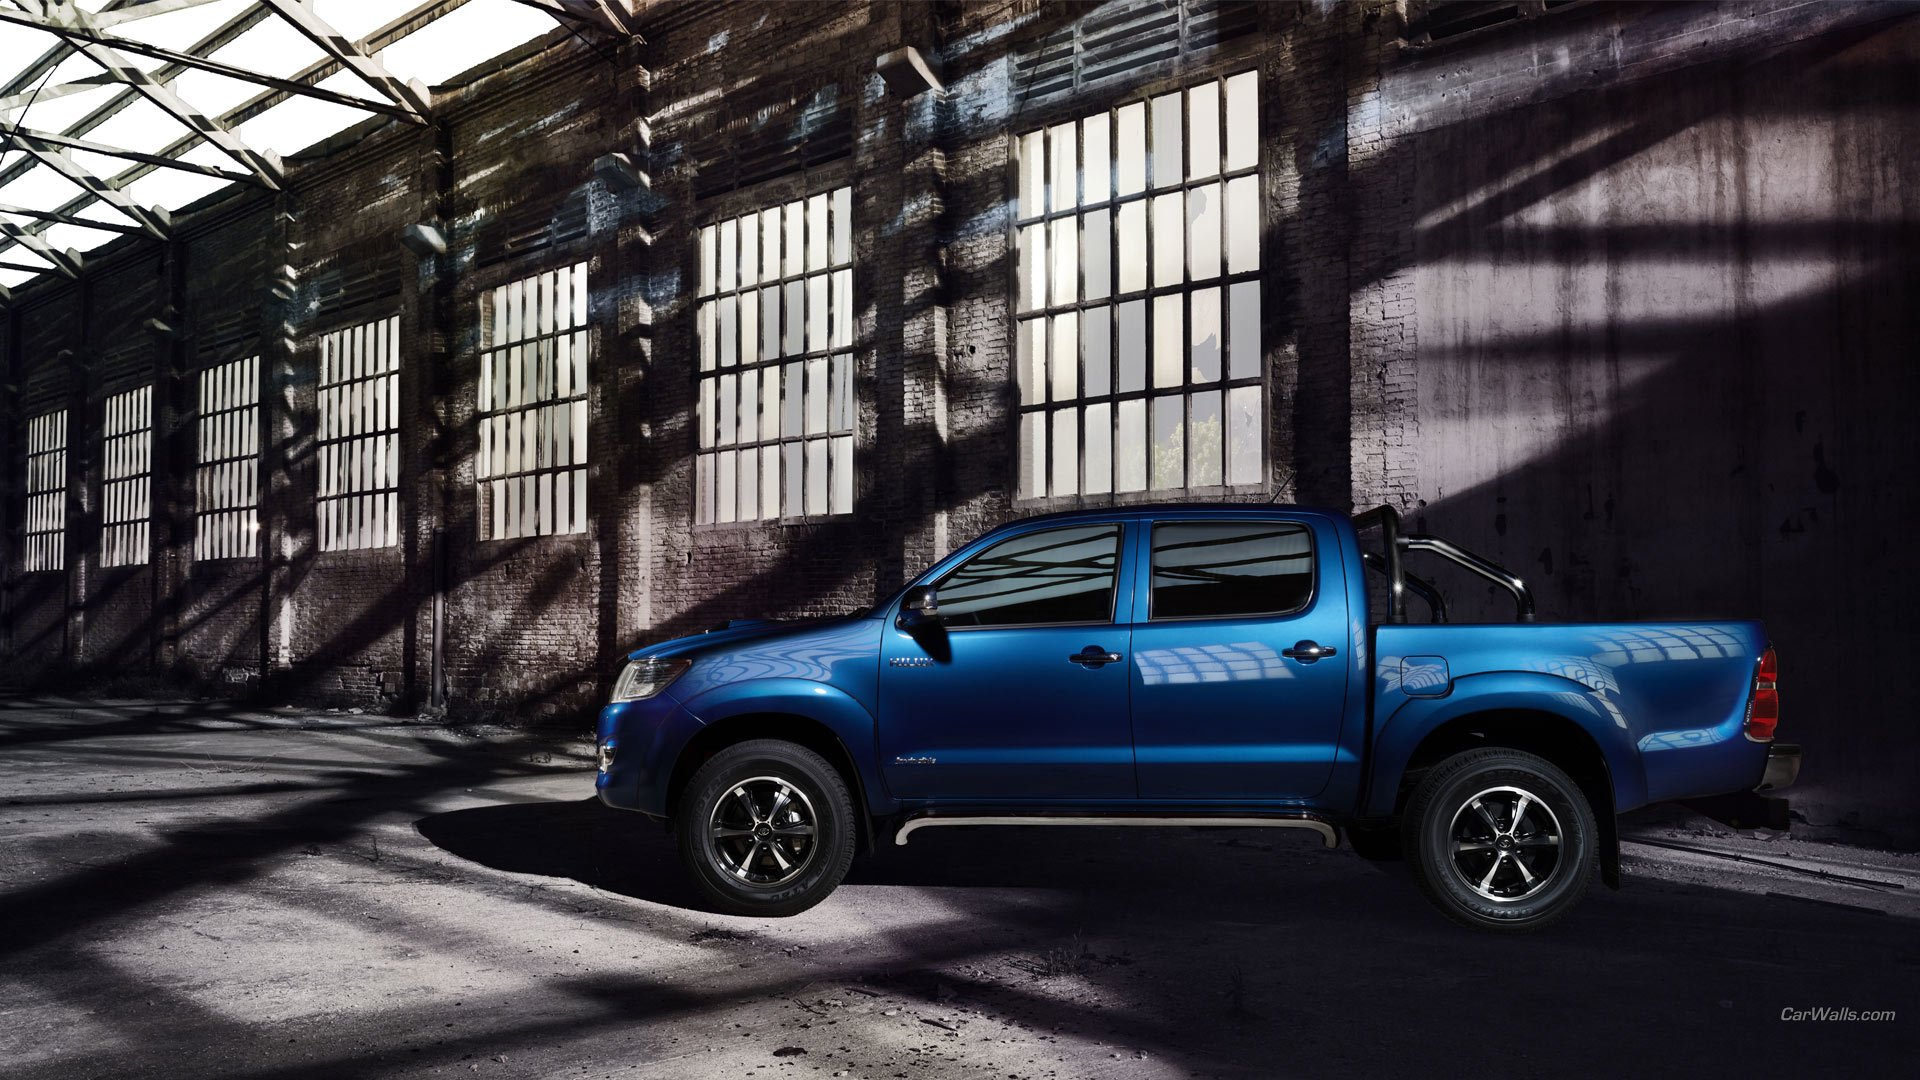 Toyota Hilux Hd Wallpaper Background Image 1920x1080 Id 450548